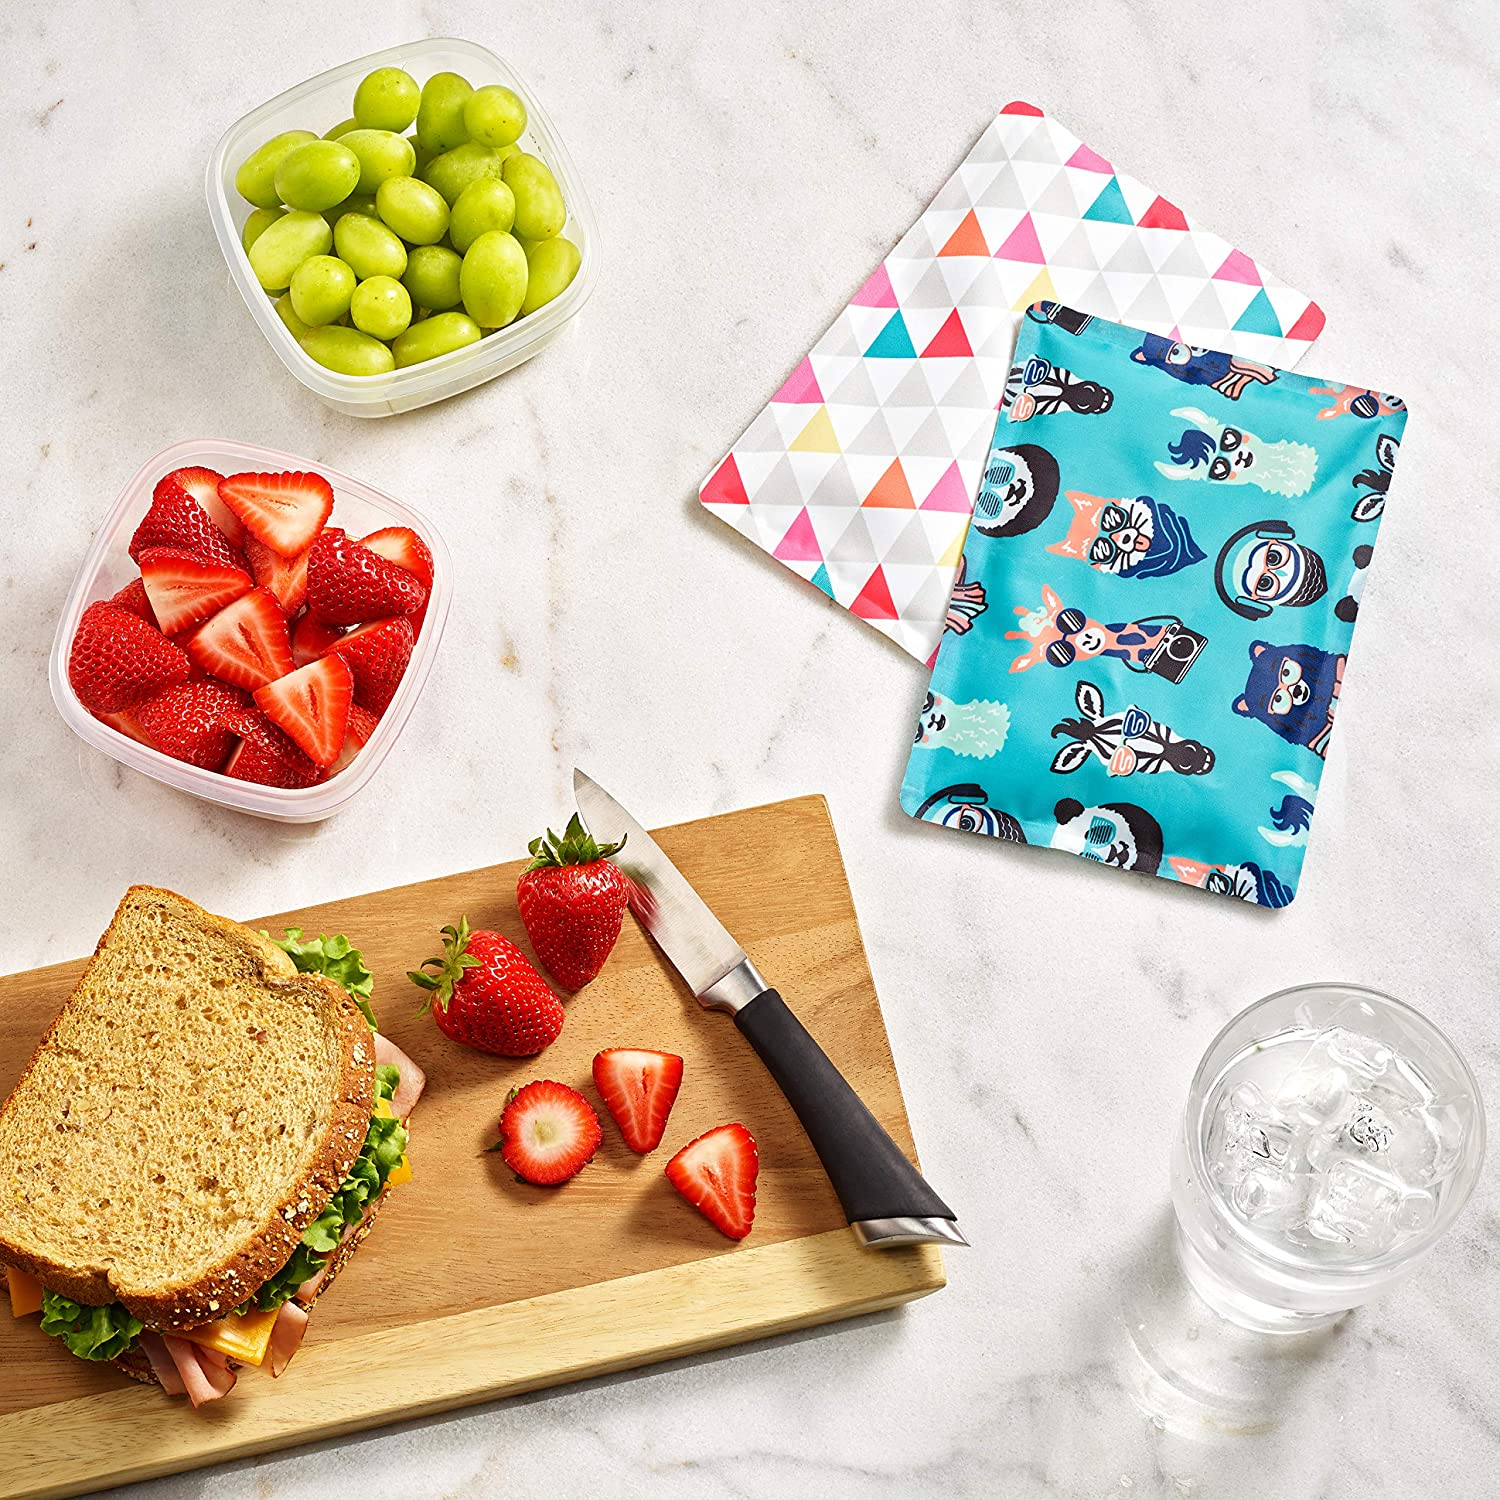 Fit /& Fresh Soft Cool Coolers Ice Packs for Kids Lunch Bags and Coolers Set of 2 Flexible Ice Packs for Lunch Boxes Multi Color